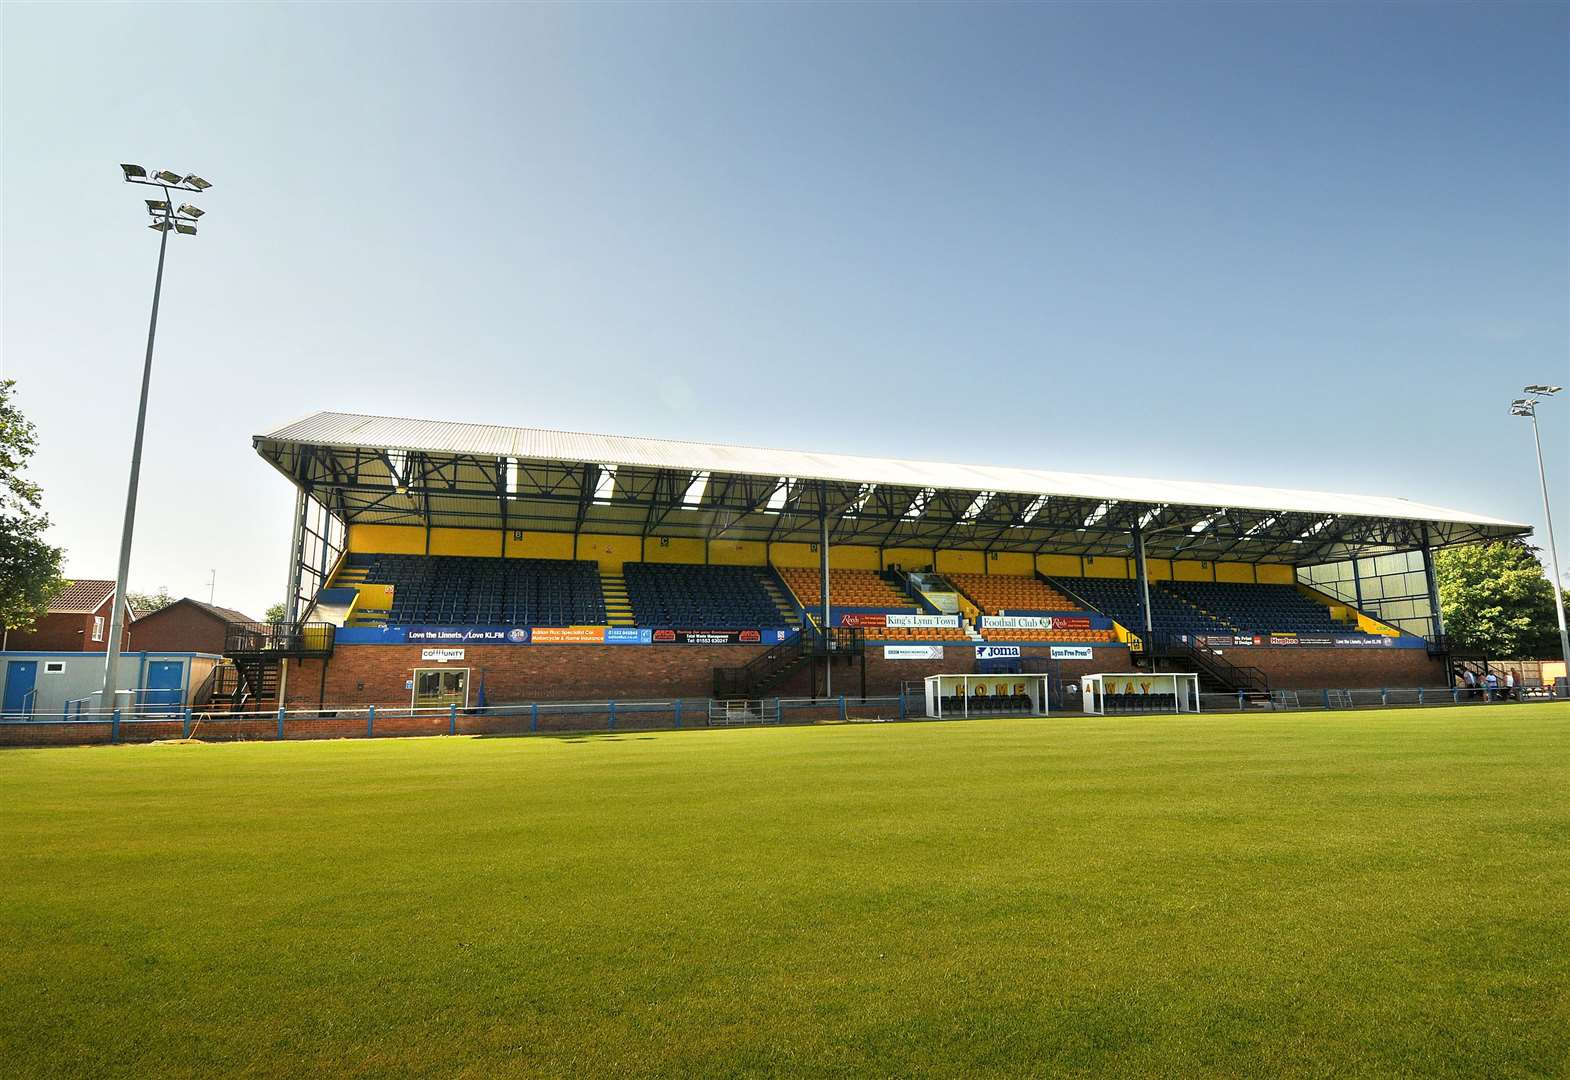 Fan banned as King's Lynn Town pledges 'zero tolerance' on disorder